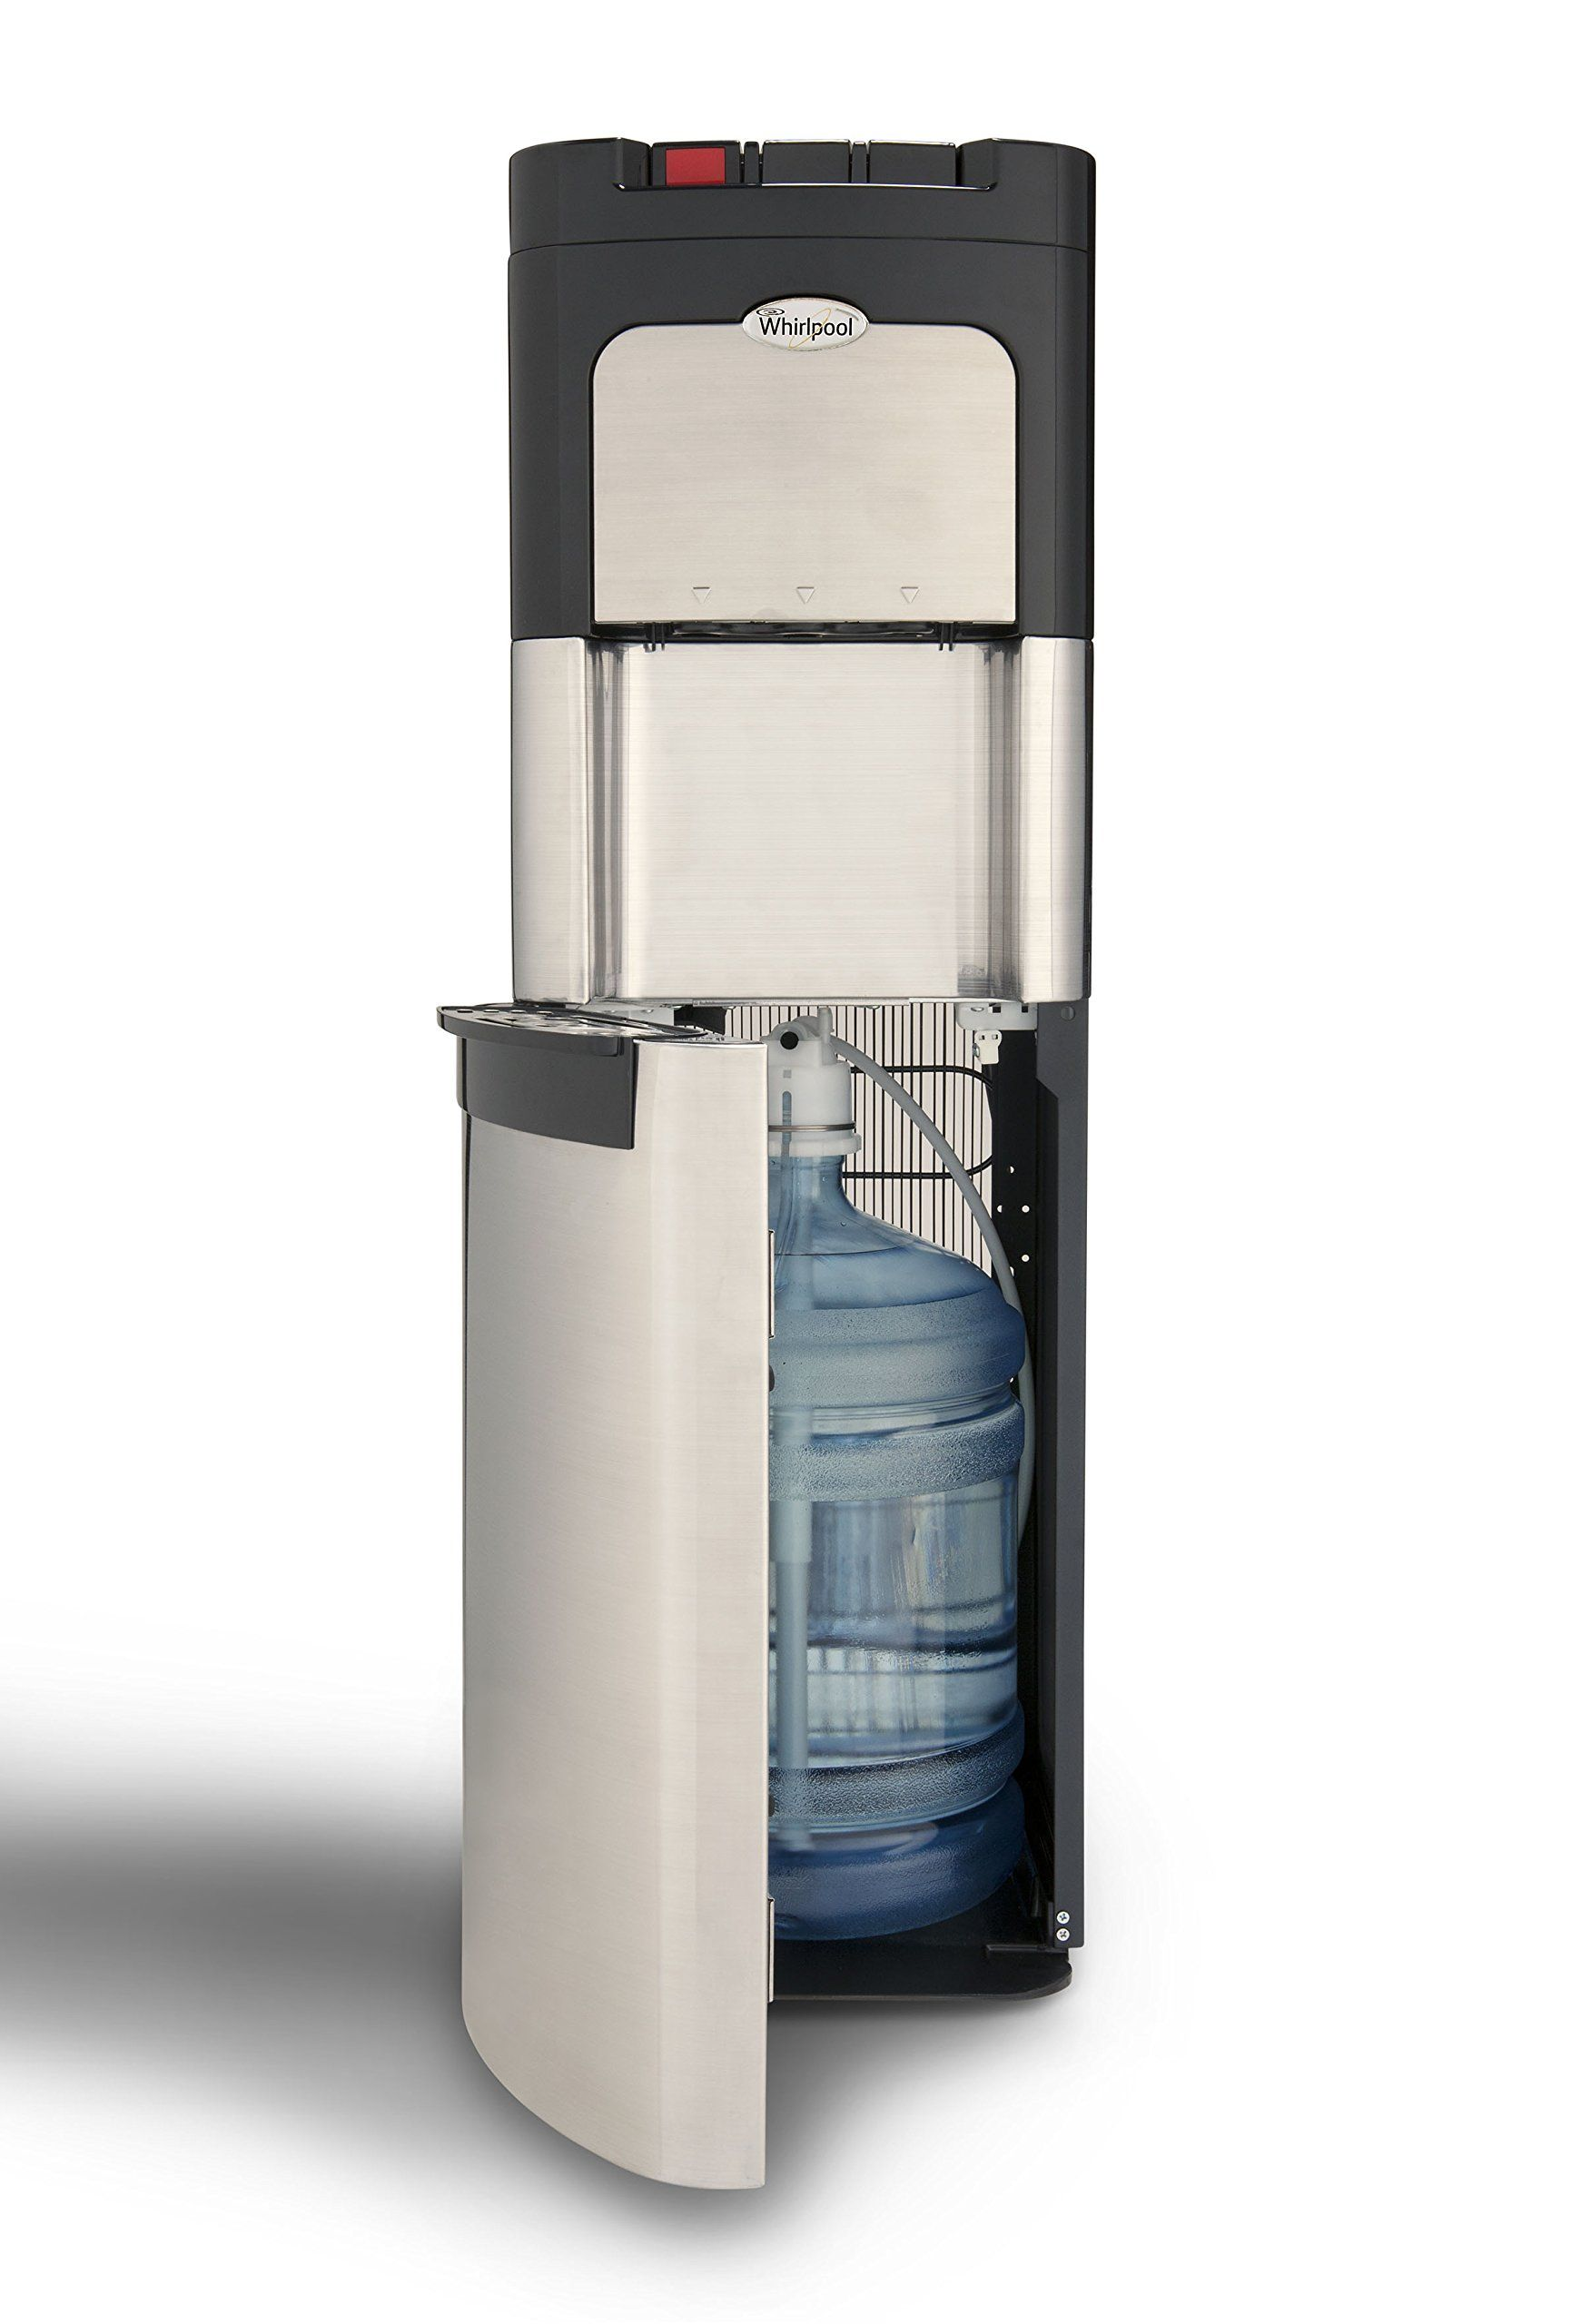 Whirlpool Bottom Loading Commercial Water Cooler Dispenser Ice Chilled Water Steaming Hot Full Stainless Stee Water Coolers Water Dispenser Water Dispensers